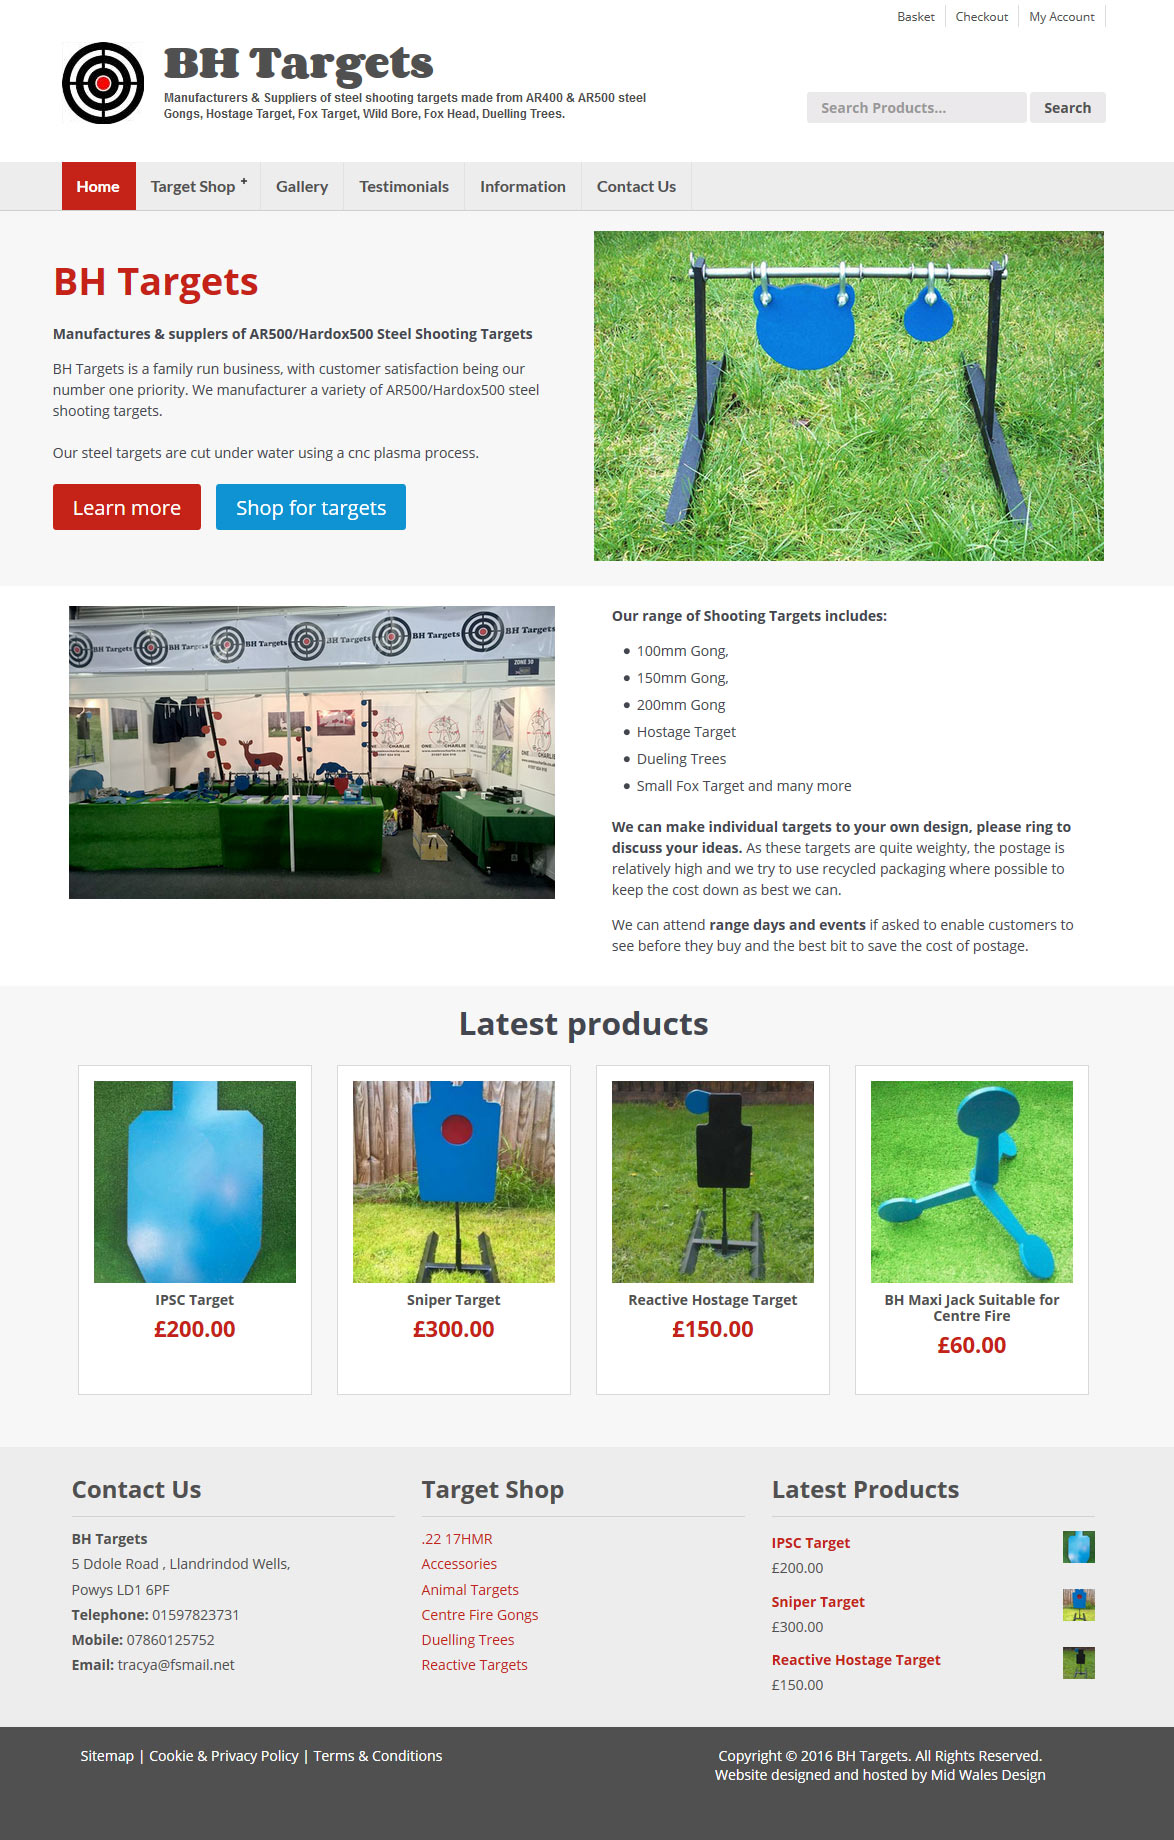 Ecommerce website for company in llandrindod wells, powys